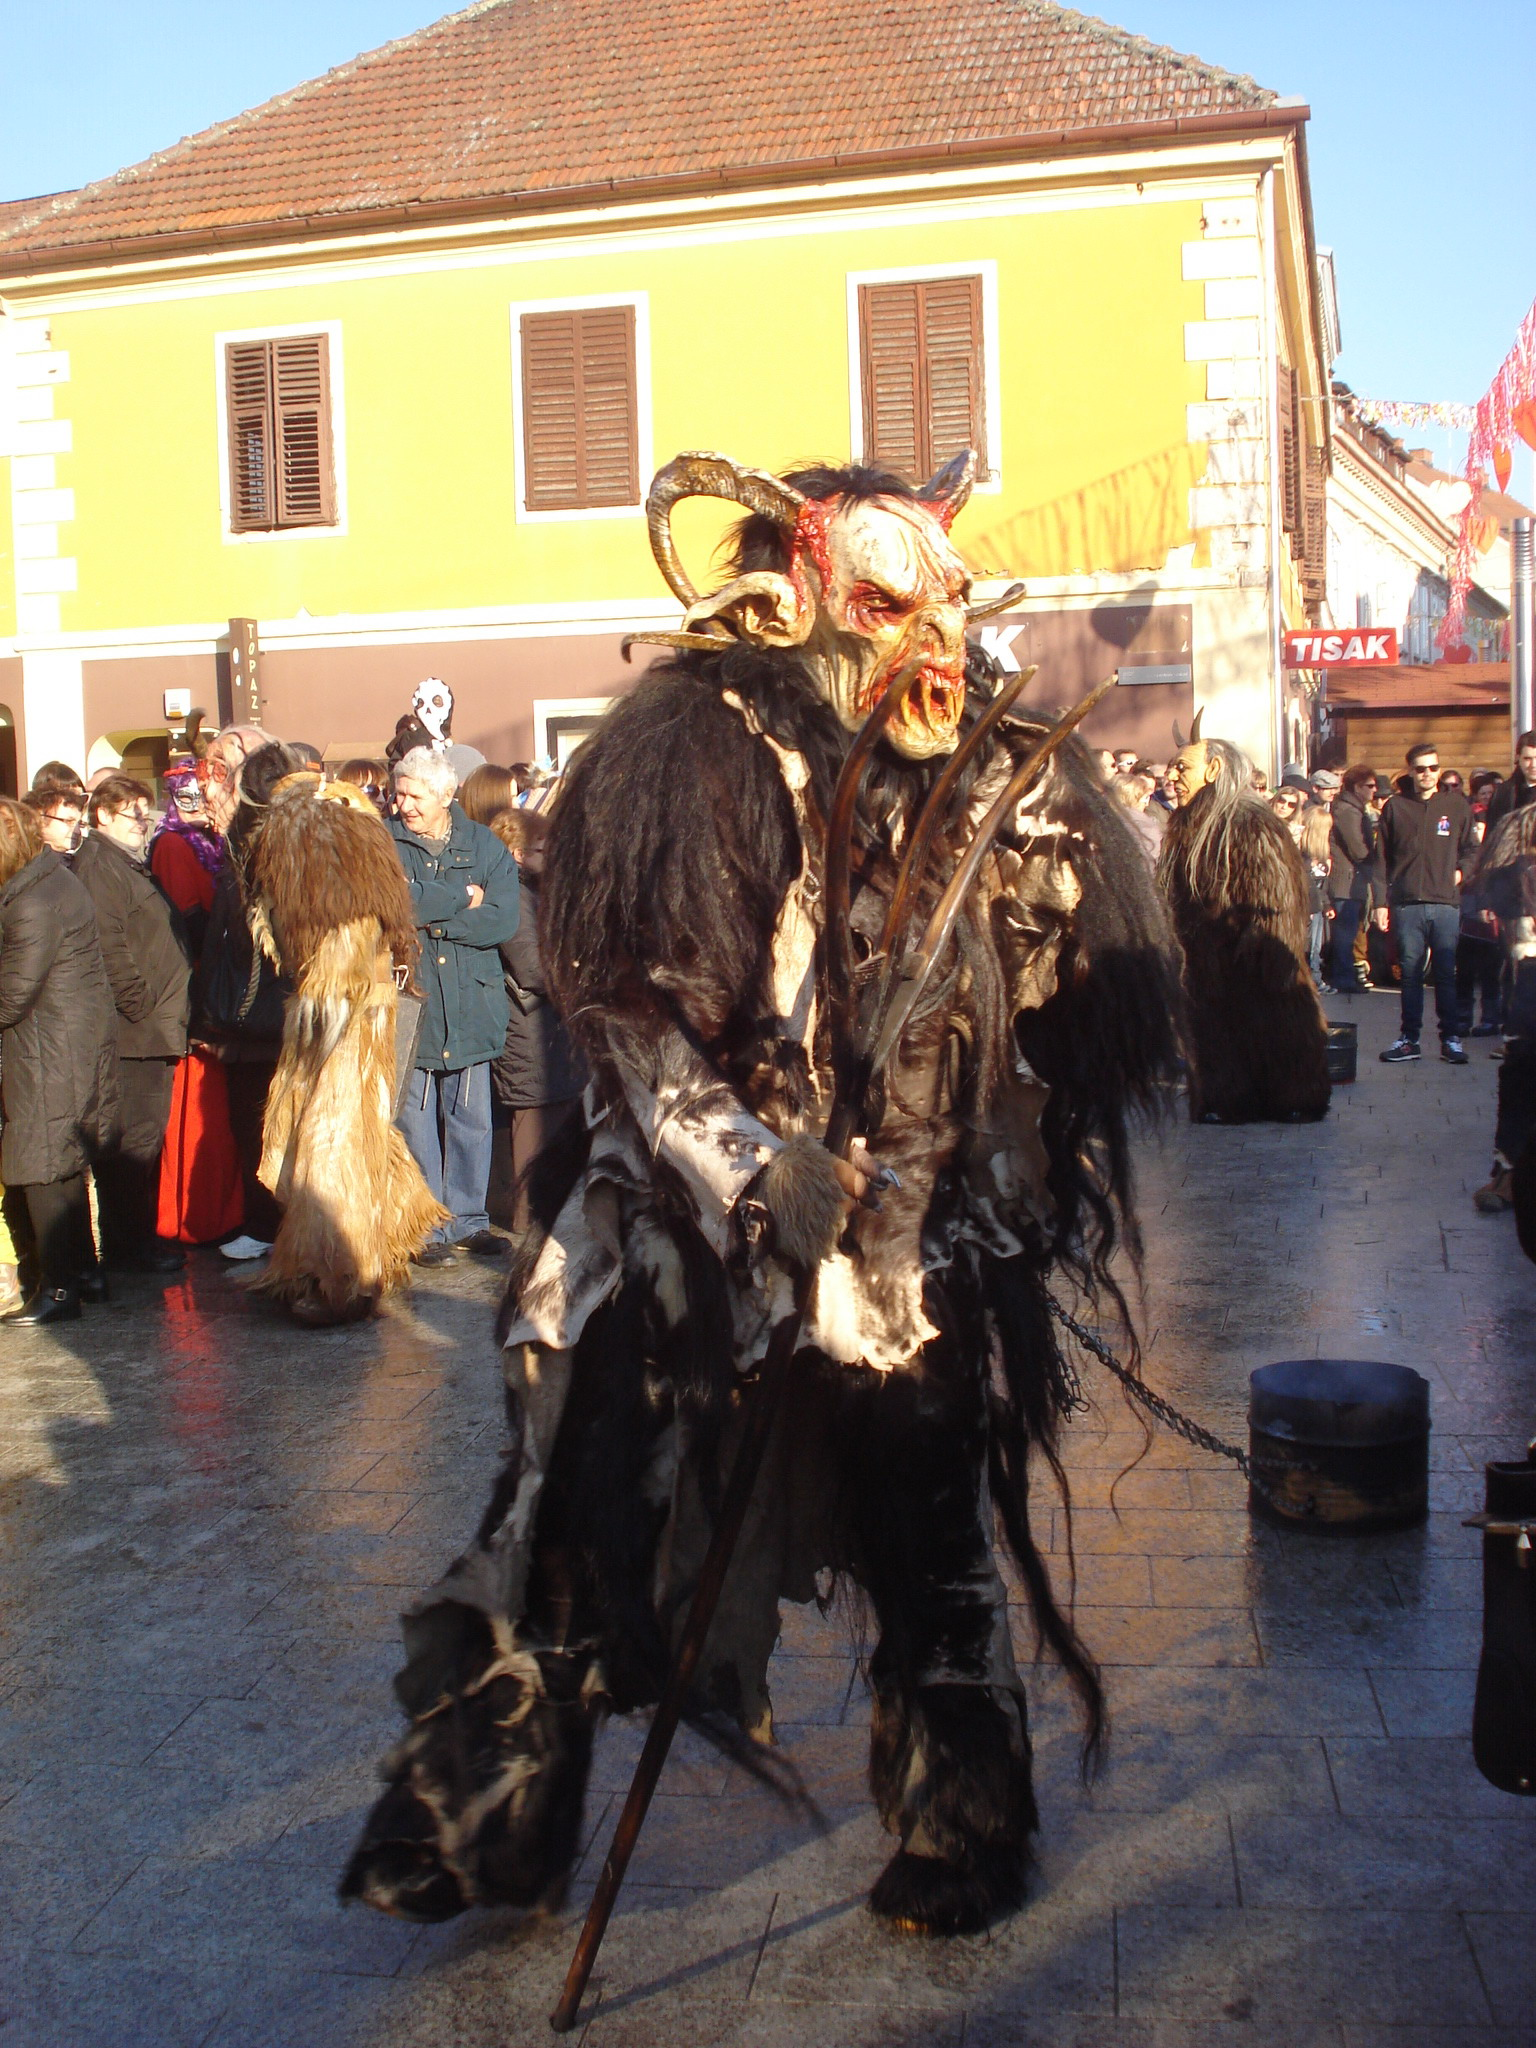 https://upload.wikimedia.org/wikipedia/commons/8/89/Me%C4%91imurski_fa%C5%A1njak_2015._-_Svetomartinski_krampus.jpg